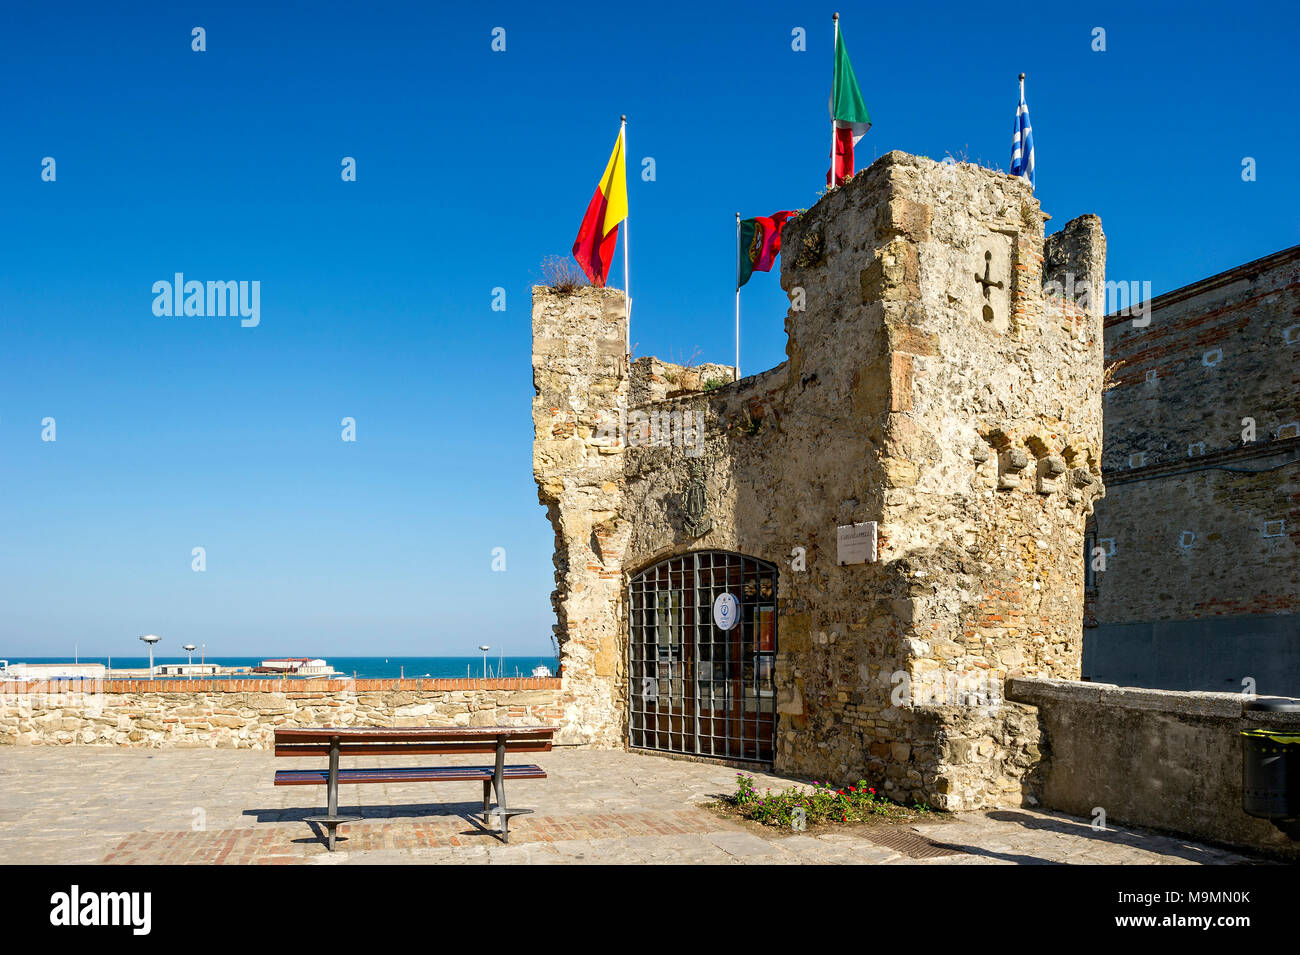 Tower of the southern bastion, Belvedere Torretta, today Tourist Info Point, Old Town, Lungomare Colombo, Region Molise, Italy - Stock Image